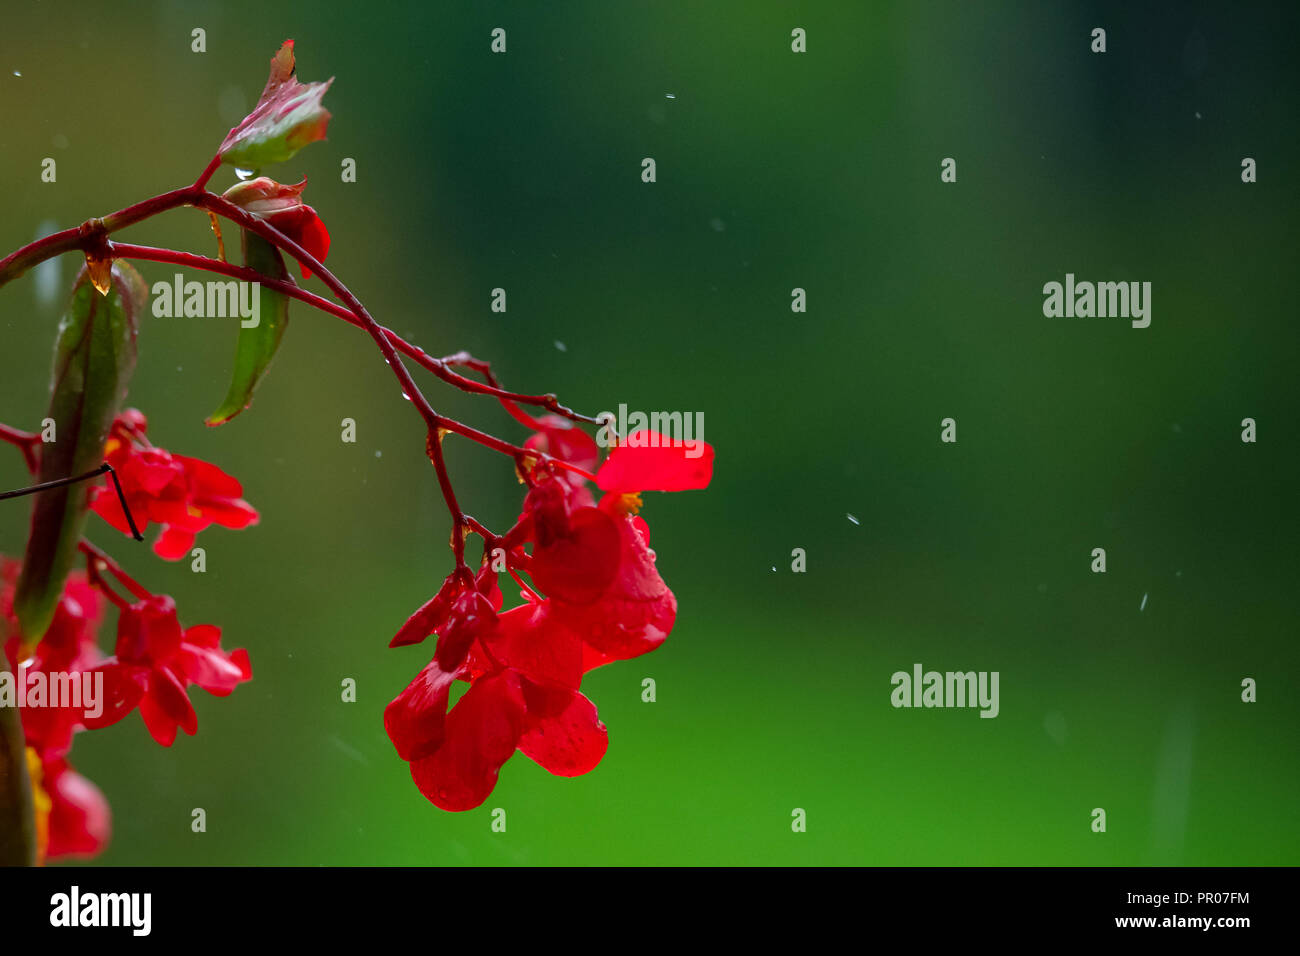 Red impatiens flower on green background in rain, isolated Stock Photo